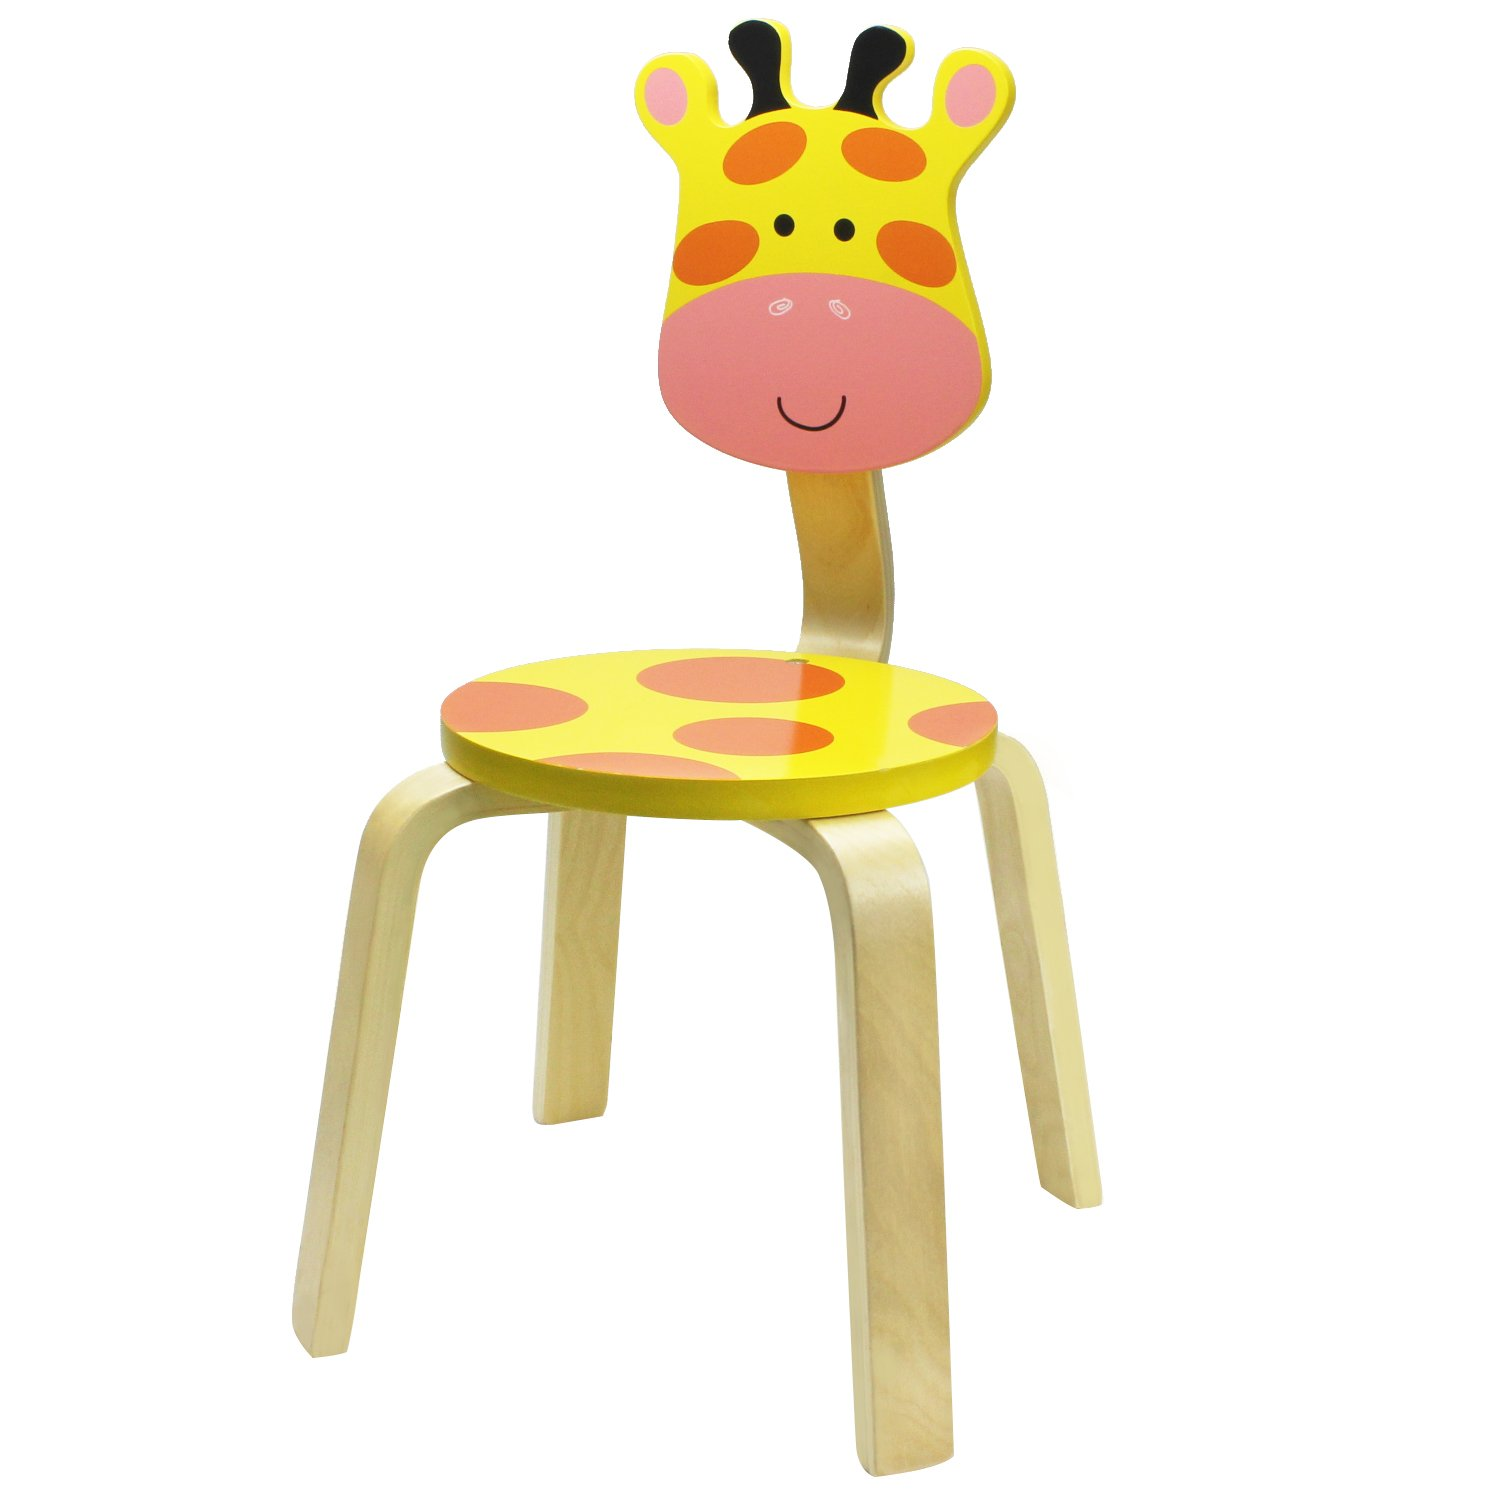 giraffe furniture. amazoncom school stack chairs bentwood for kids and cute animal style baby boys girls toddlers children wooden furniture chair 1 2 giraffe